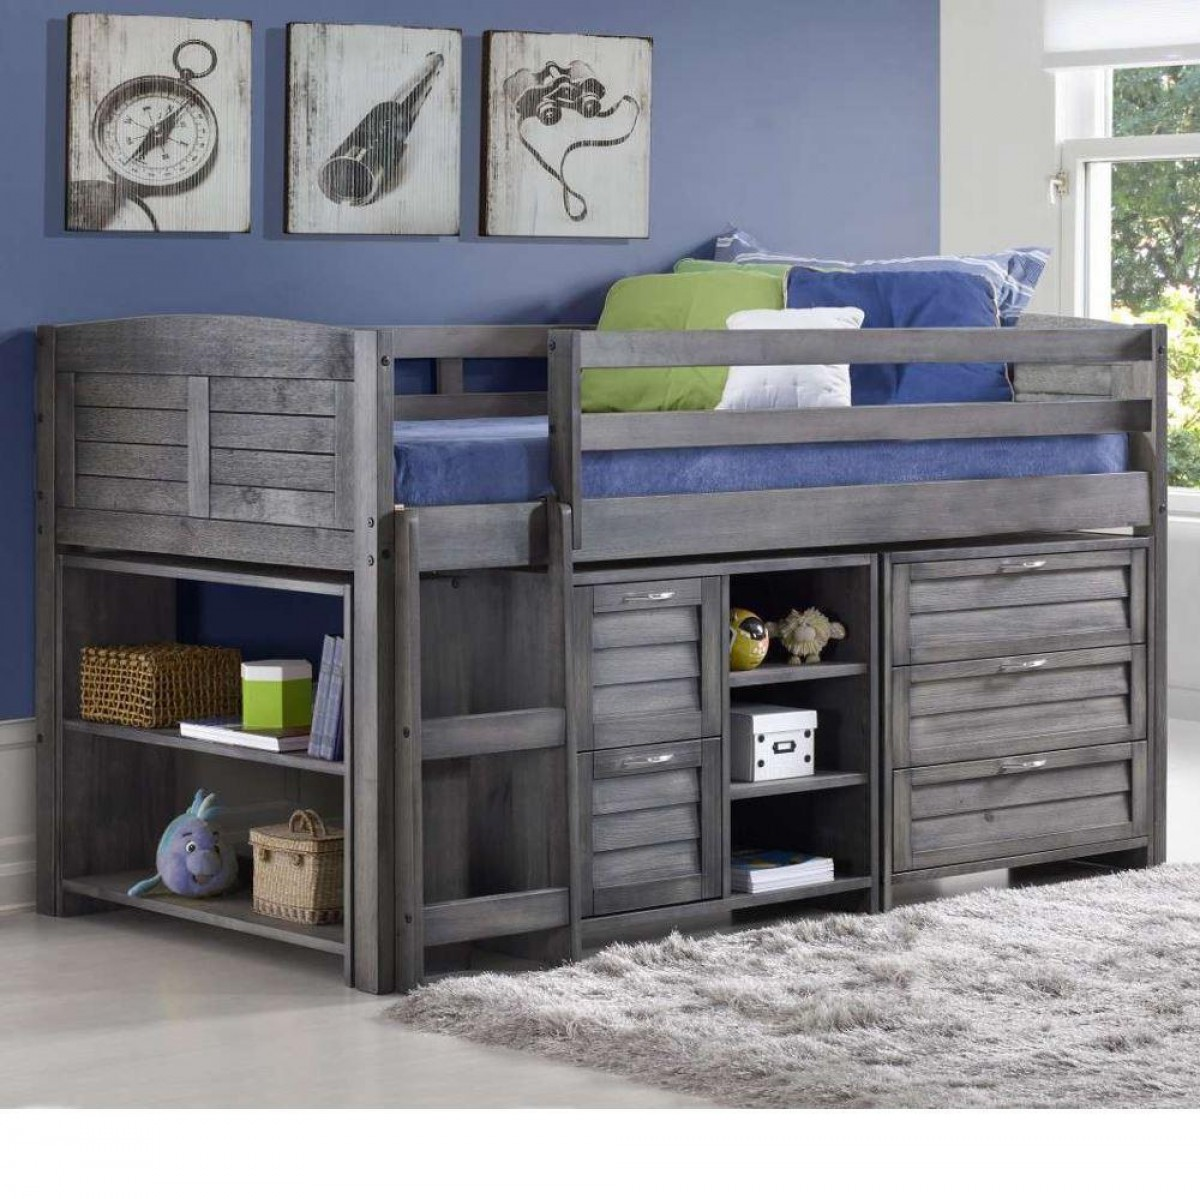 Cosy Grey Wooden Mid Sleeper Storage Bed